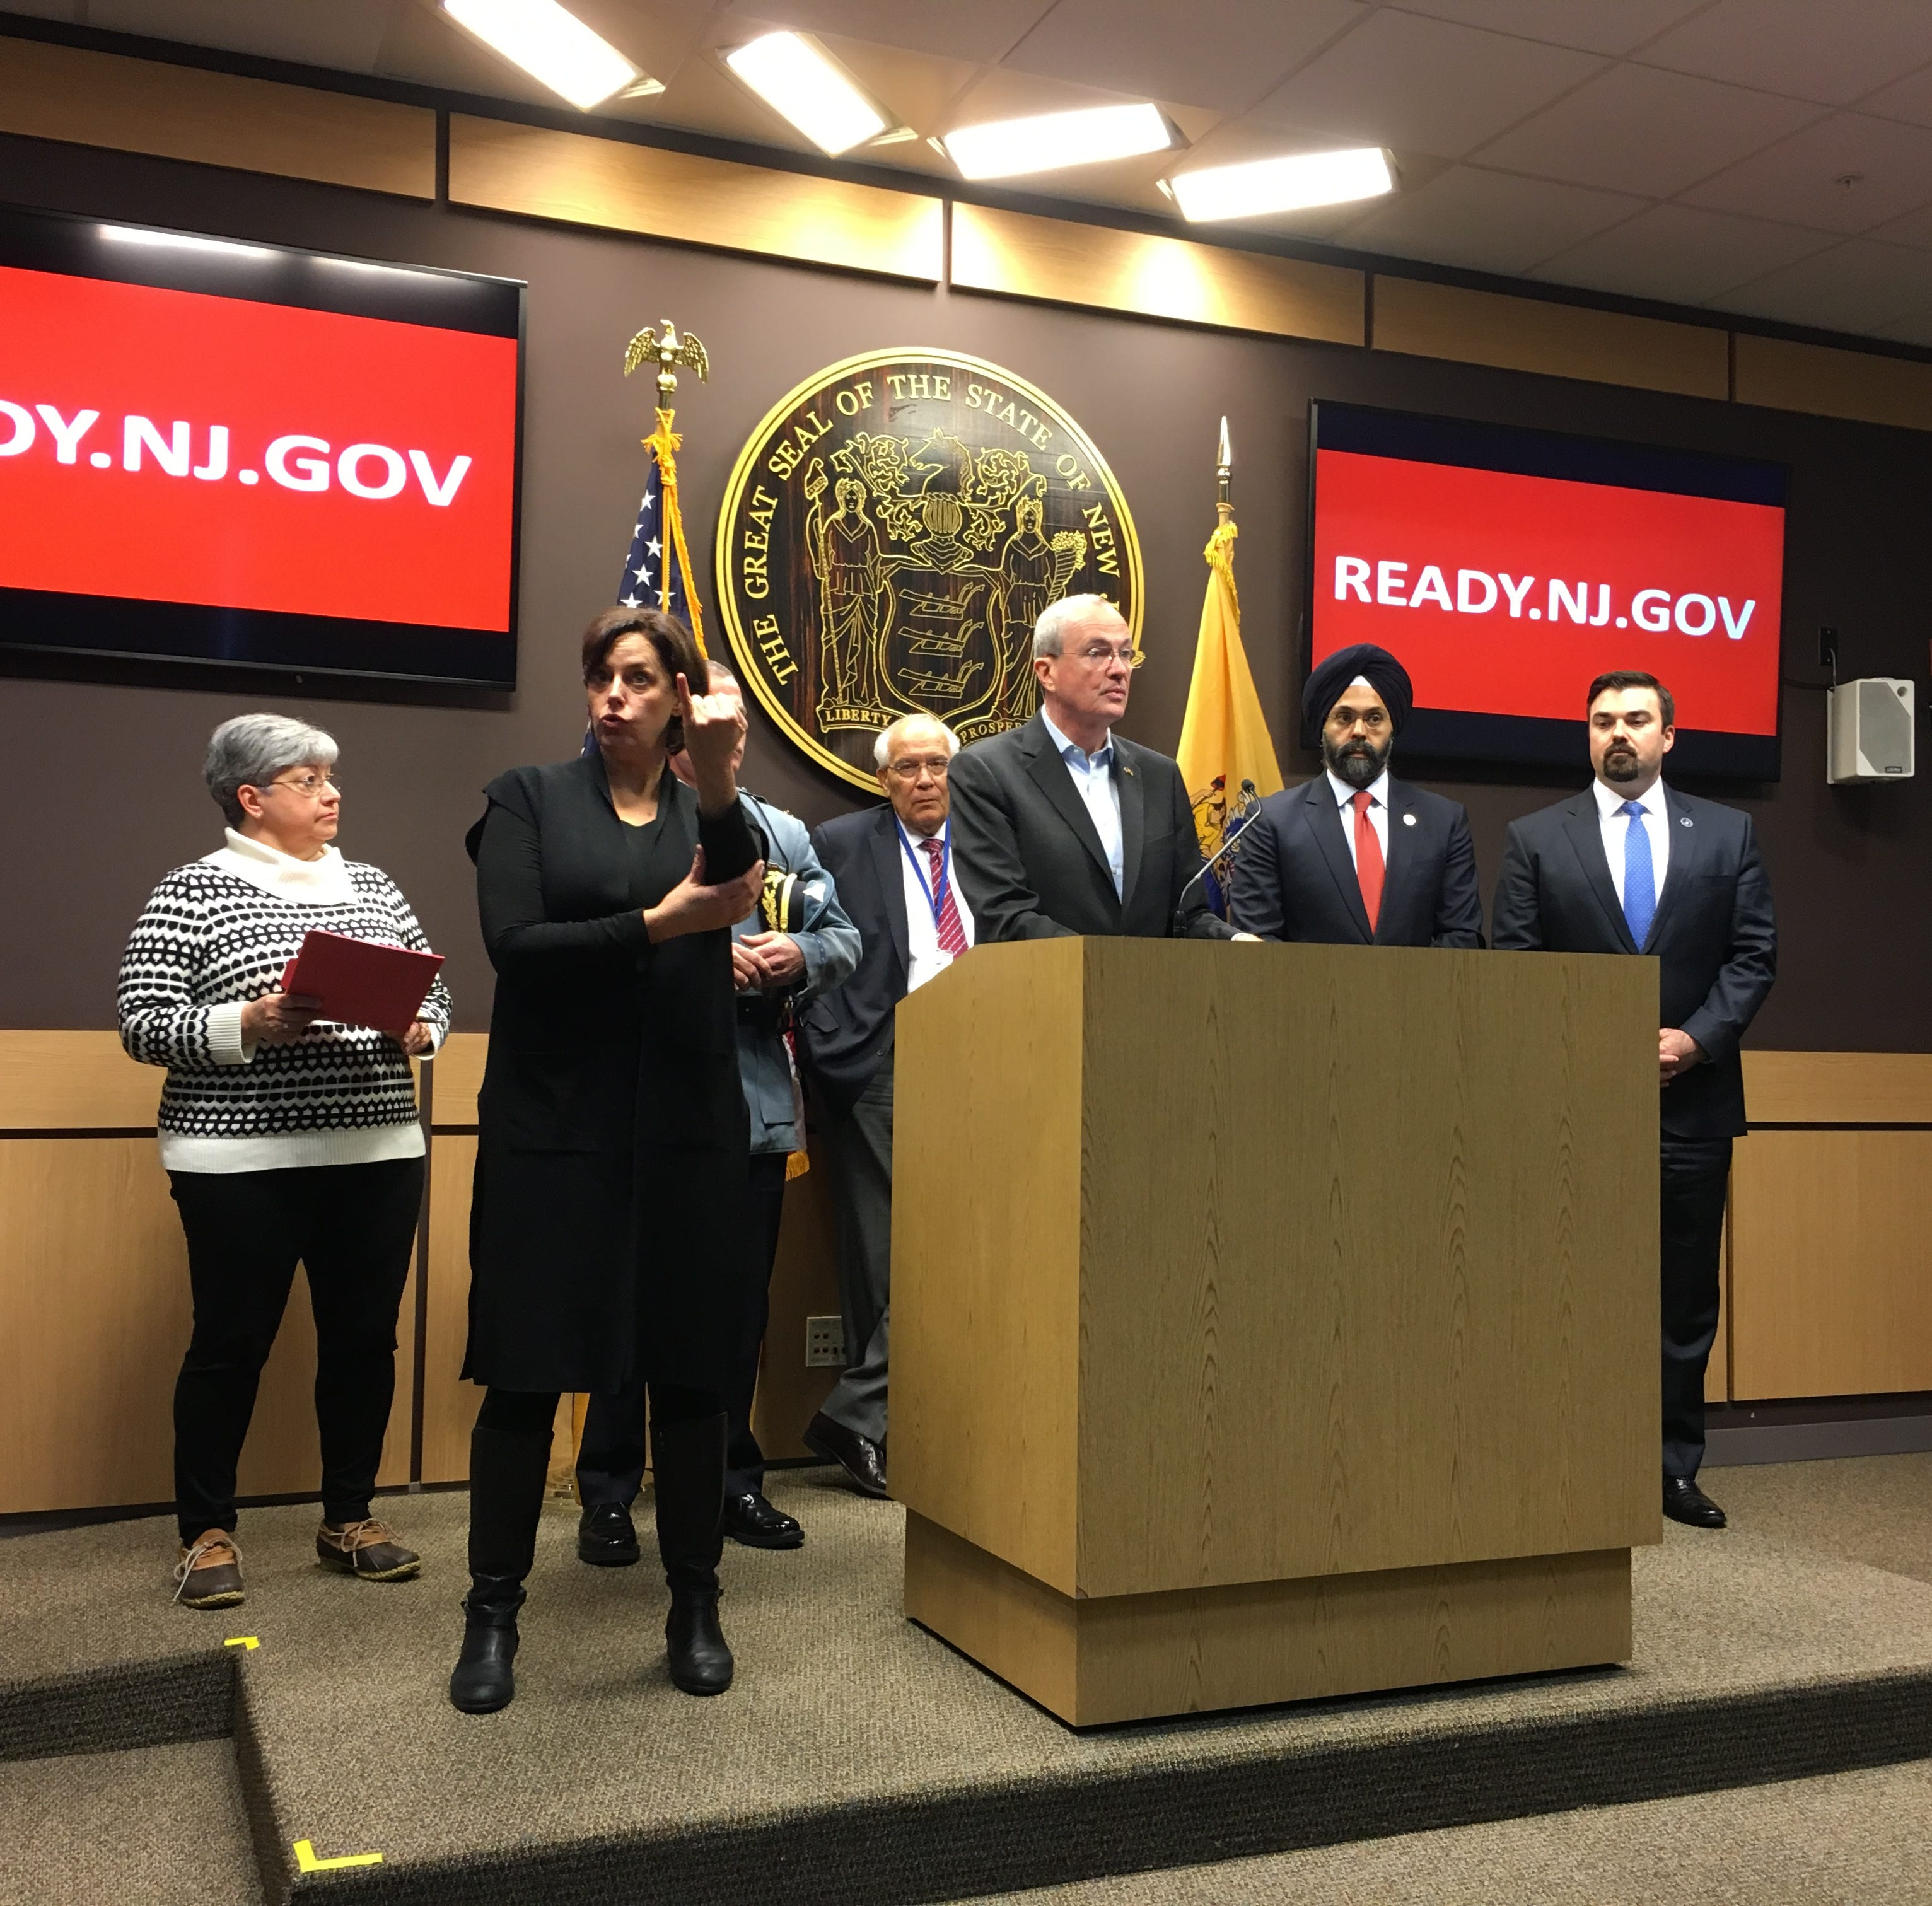 Phil Murphy declares NJ state of emergency, travel restrictions ahead of snowstorm